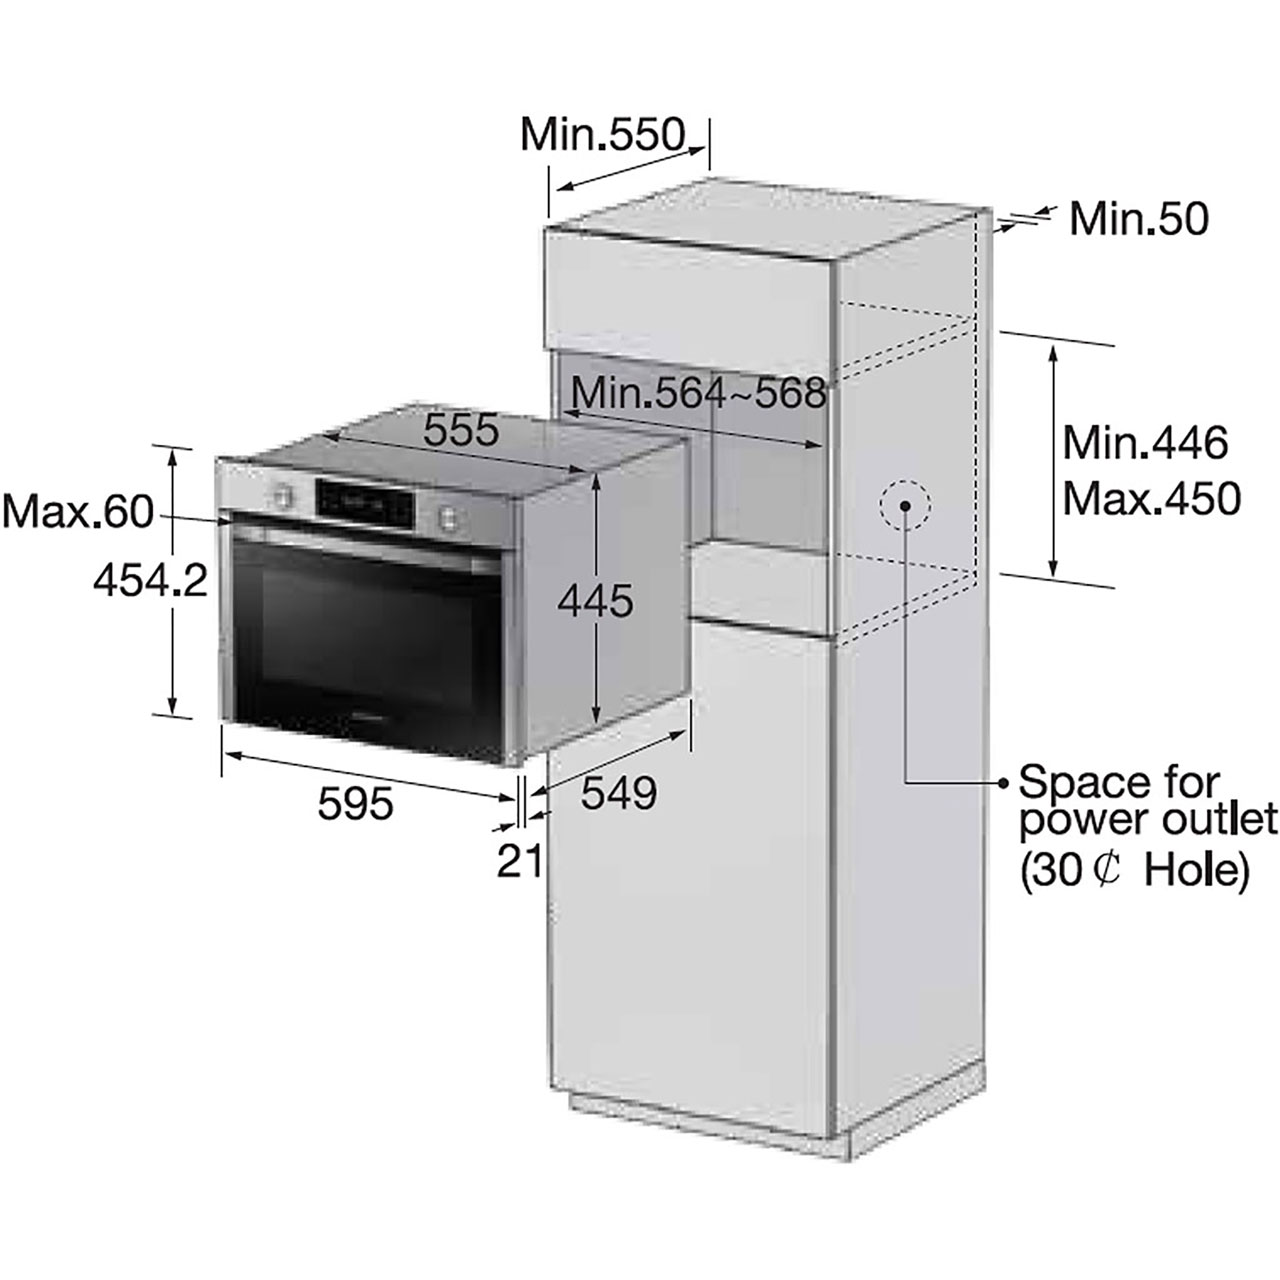 Samsung Nq50j3530bs Built In Combination Microwave Oven Stainless Steel